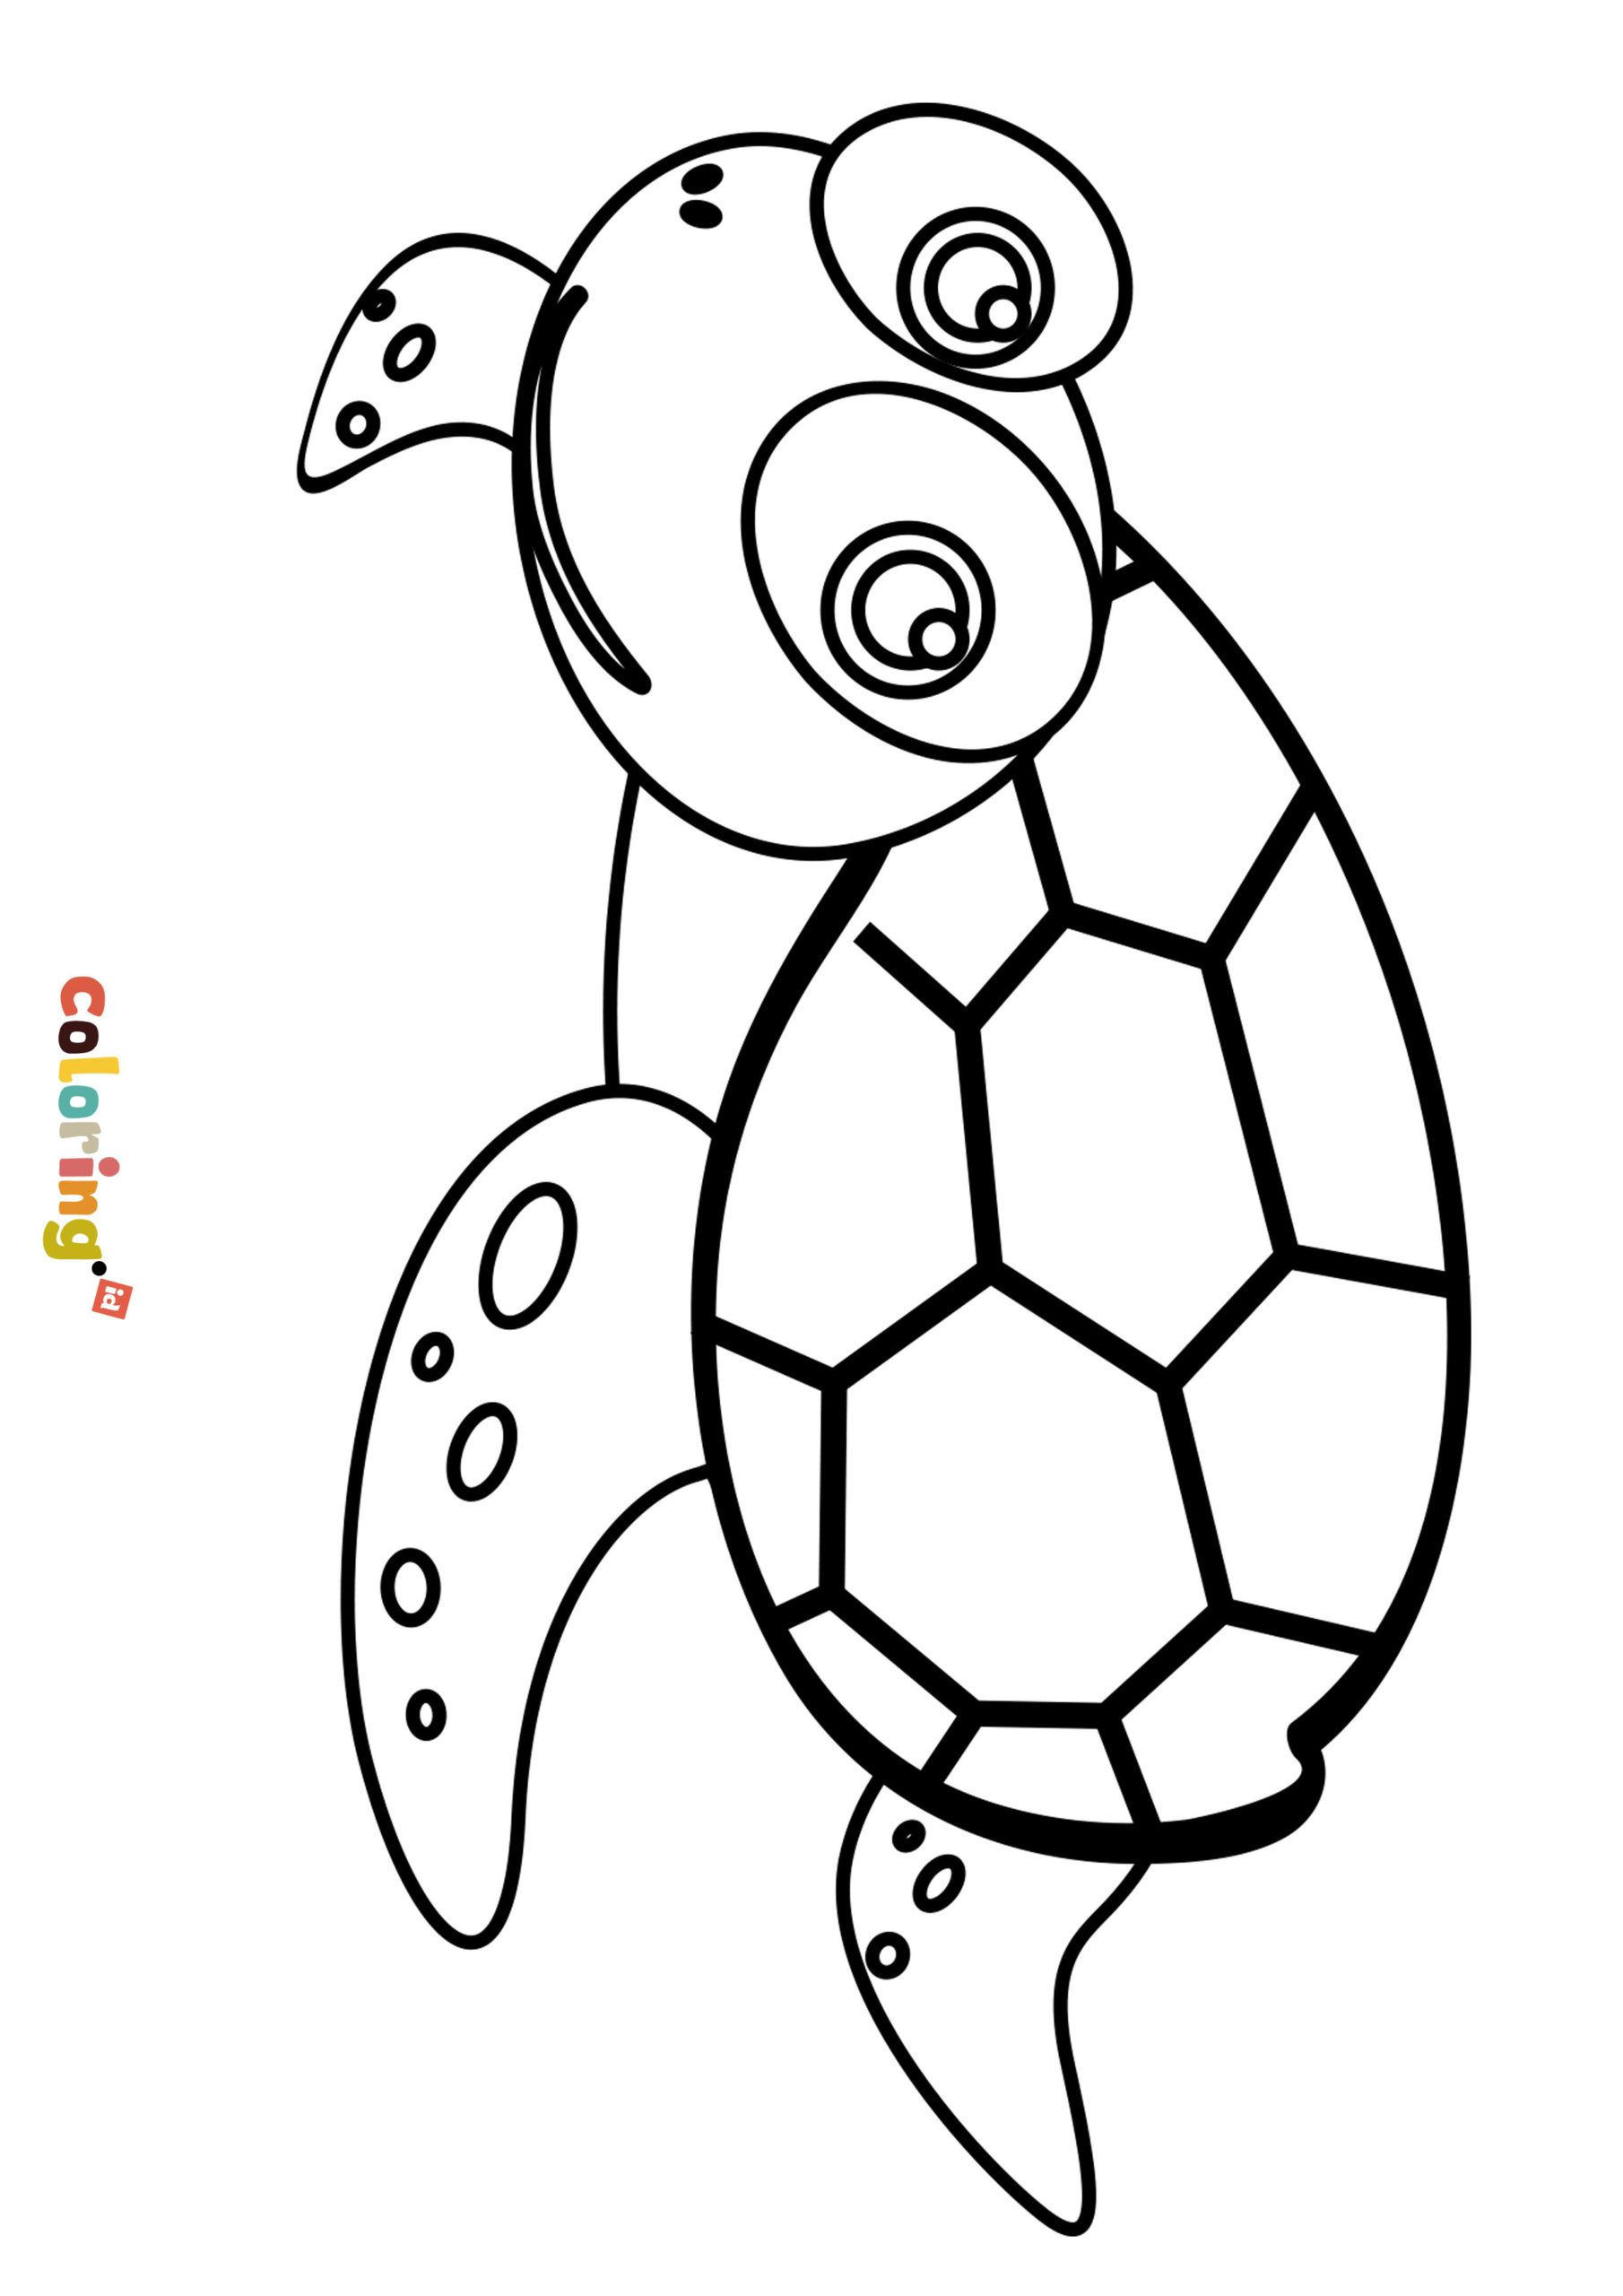 Turtle Coloring Page For Kids All Animal Coloring Pages Collection For Preschool Kindergarten And Turtle Coloring Pages Animal Coloring Pages Coloring Pages